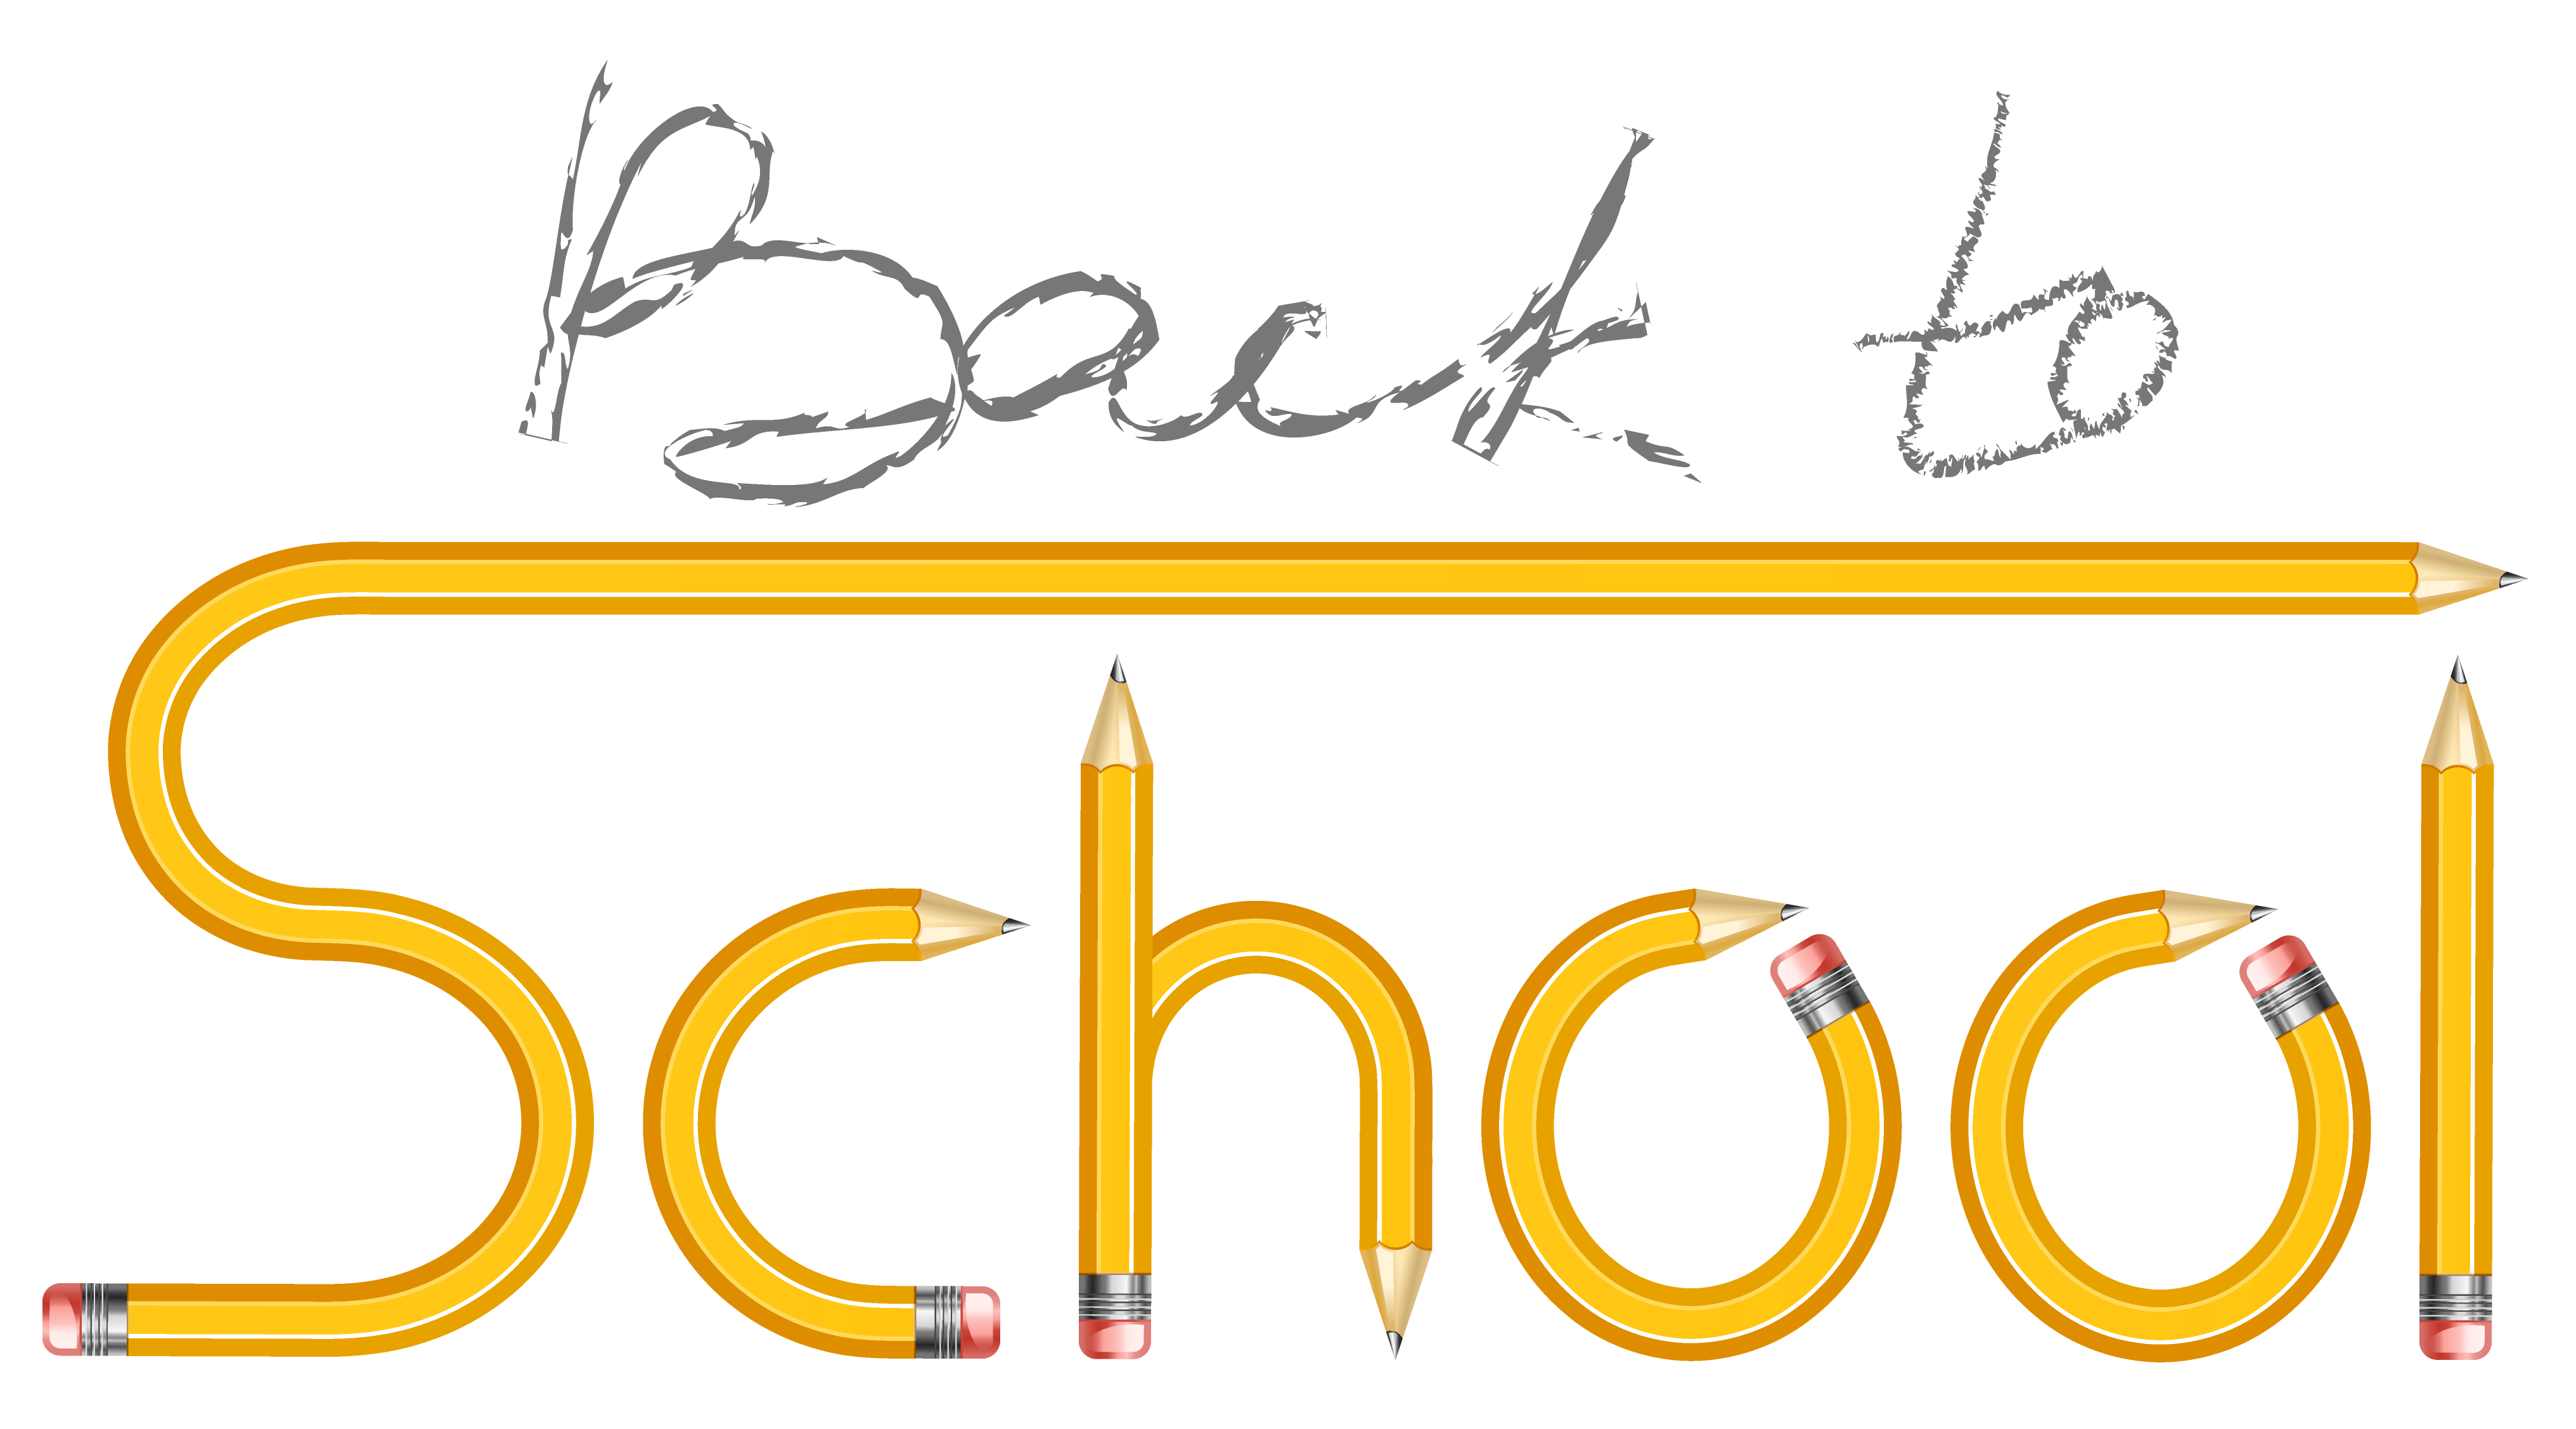 Winter break no school clipart clipart black and white library Transparent Back to School with Pencils PNG Clipart Image | Gallery ... clipart black and white library